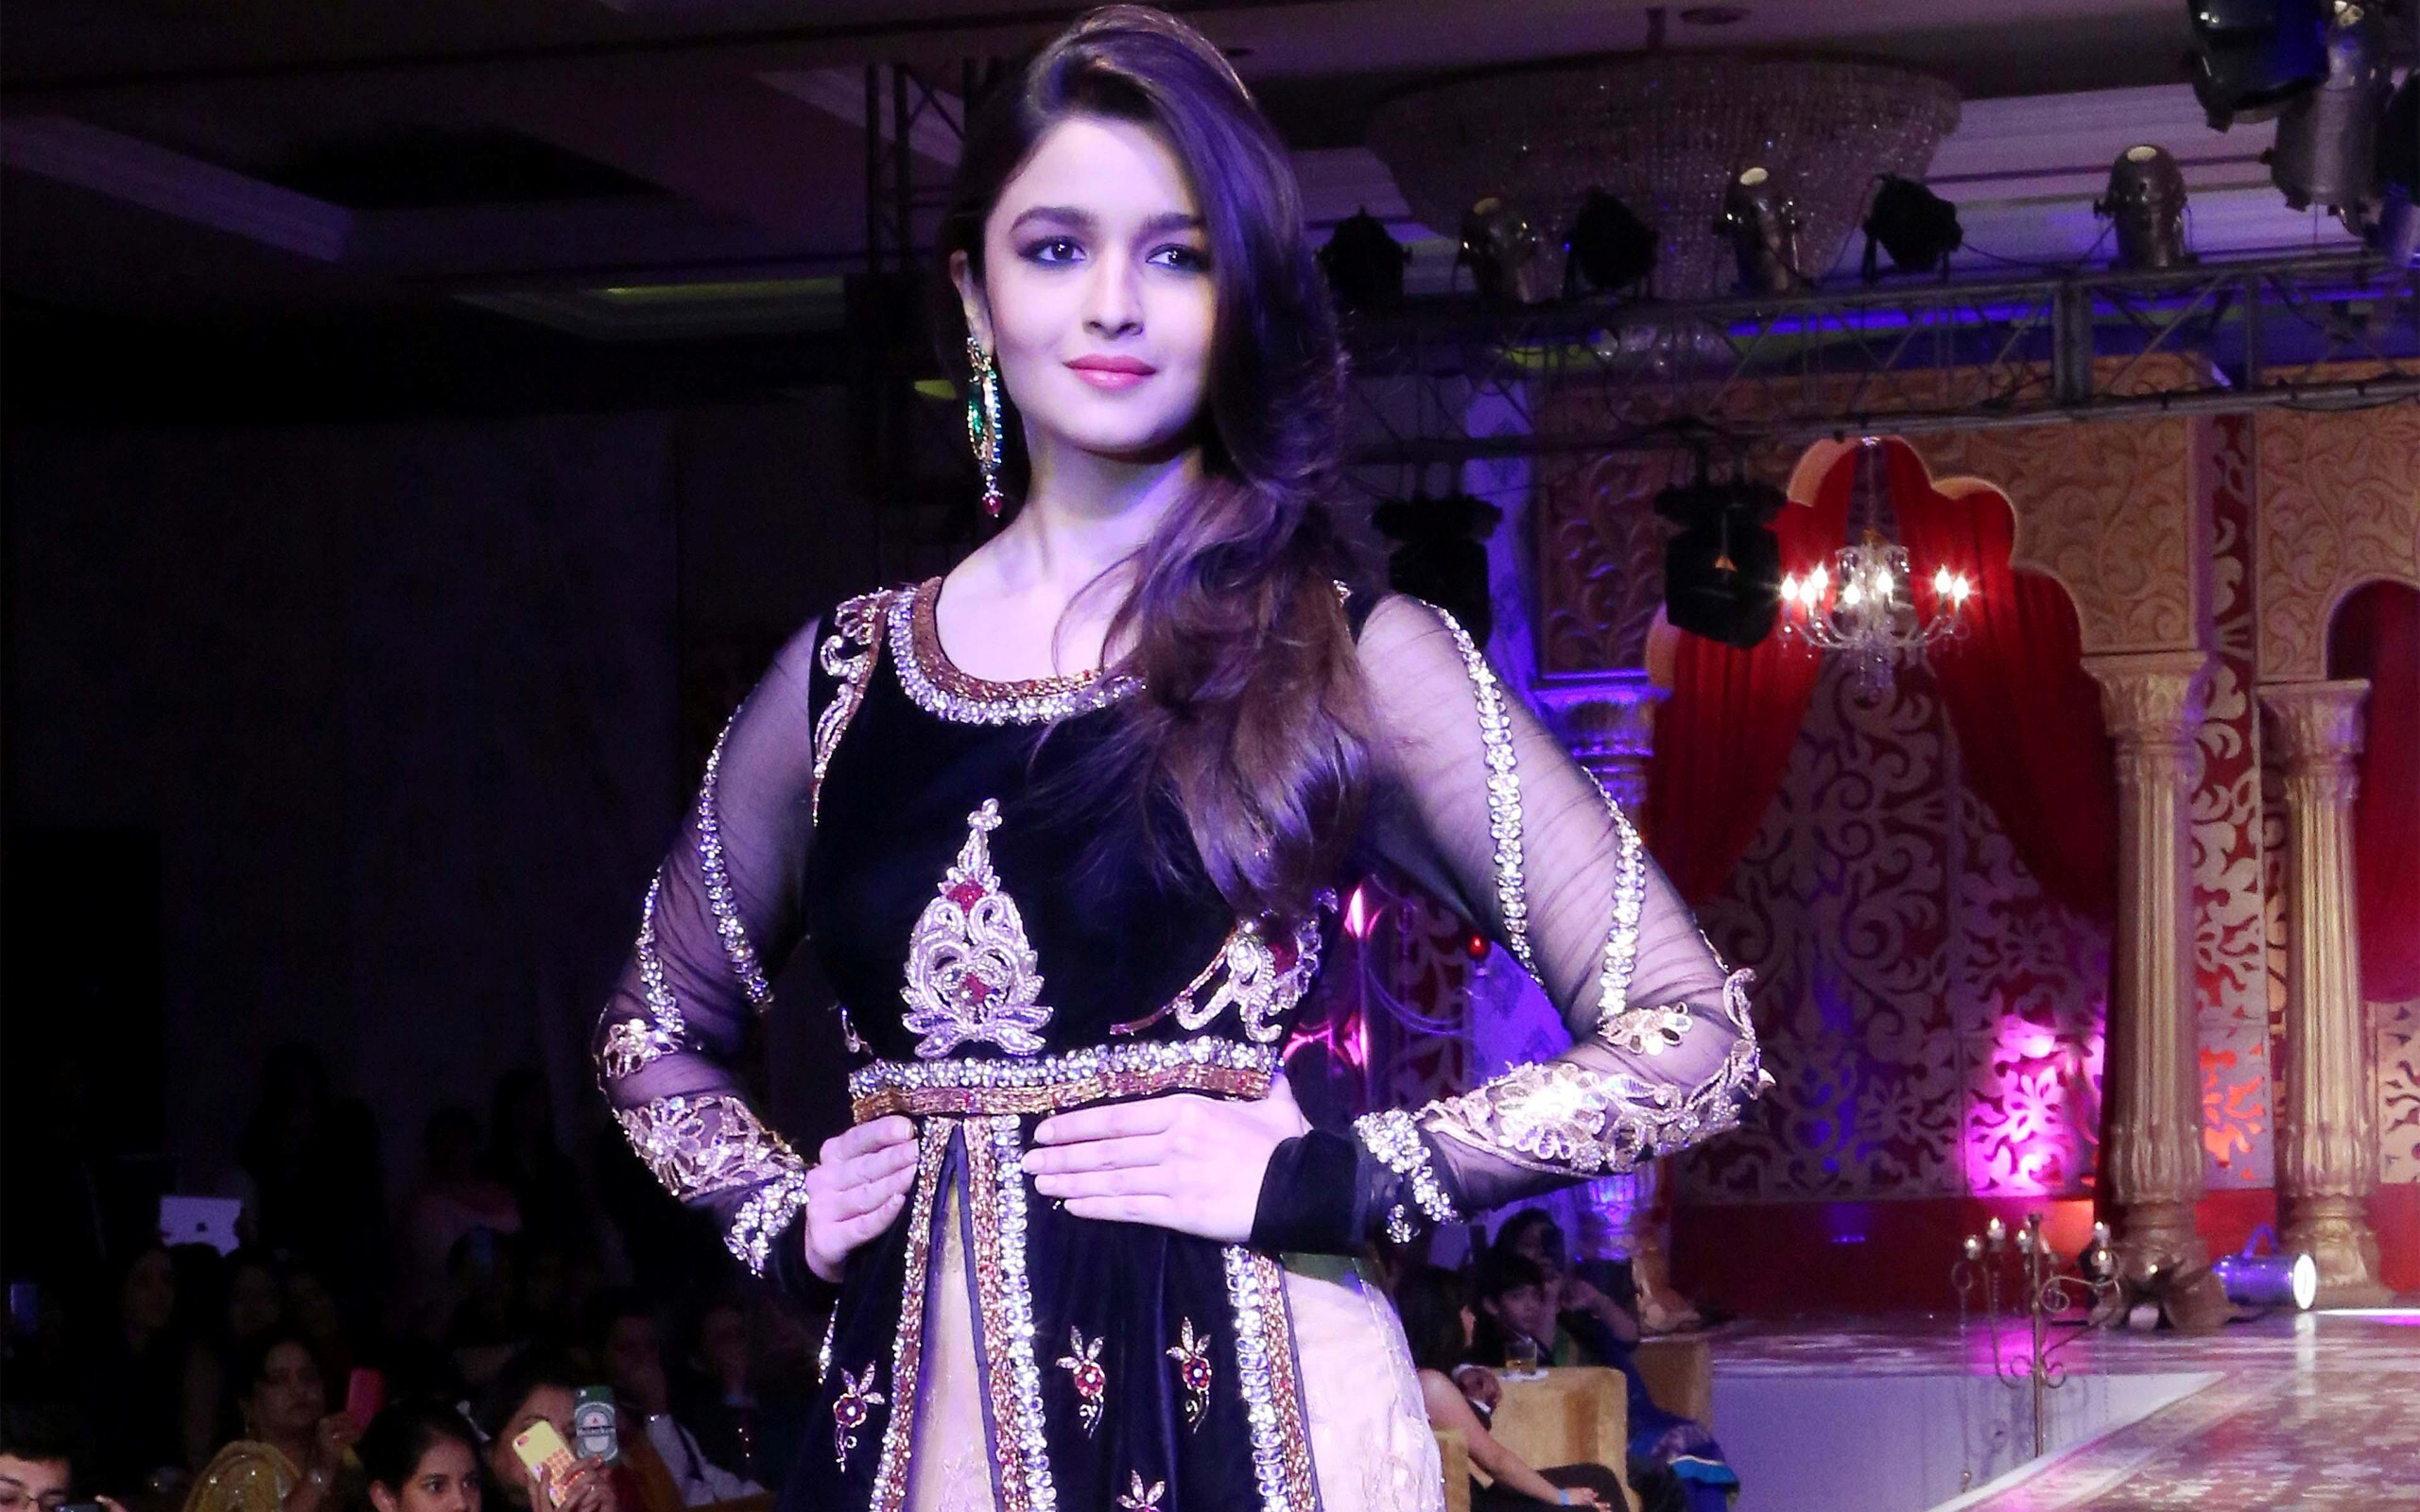 most famous beautiful actress alia bhatt in new latest design dress